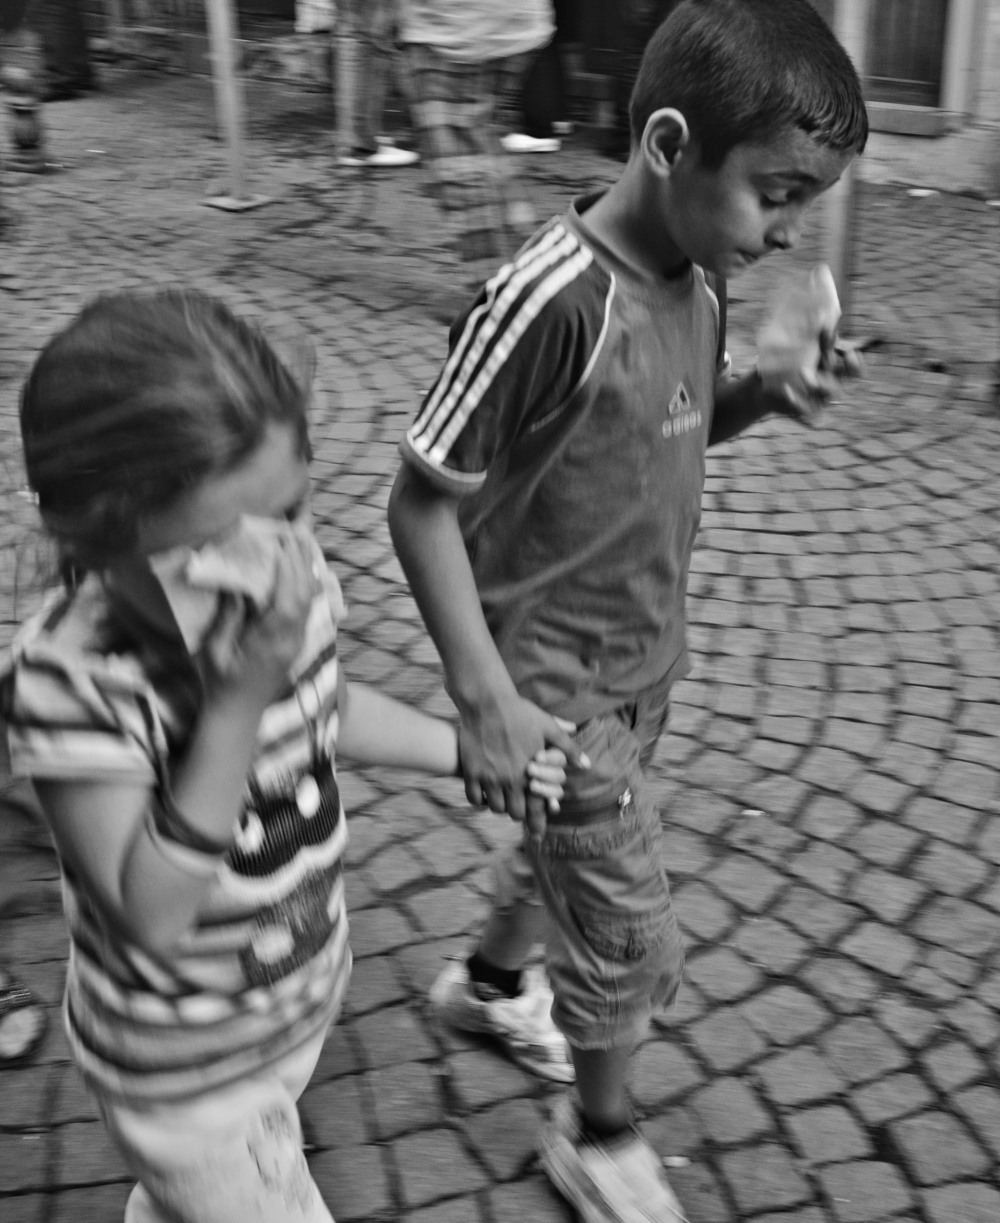 Children teargassed Taksim Gezi Park